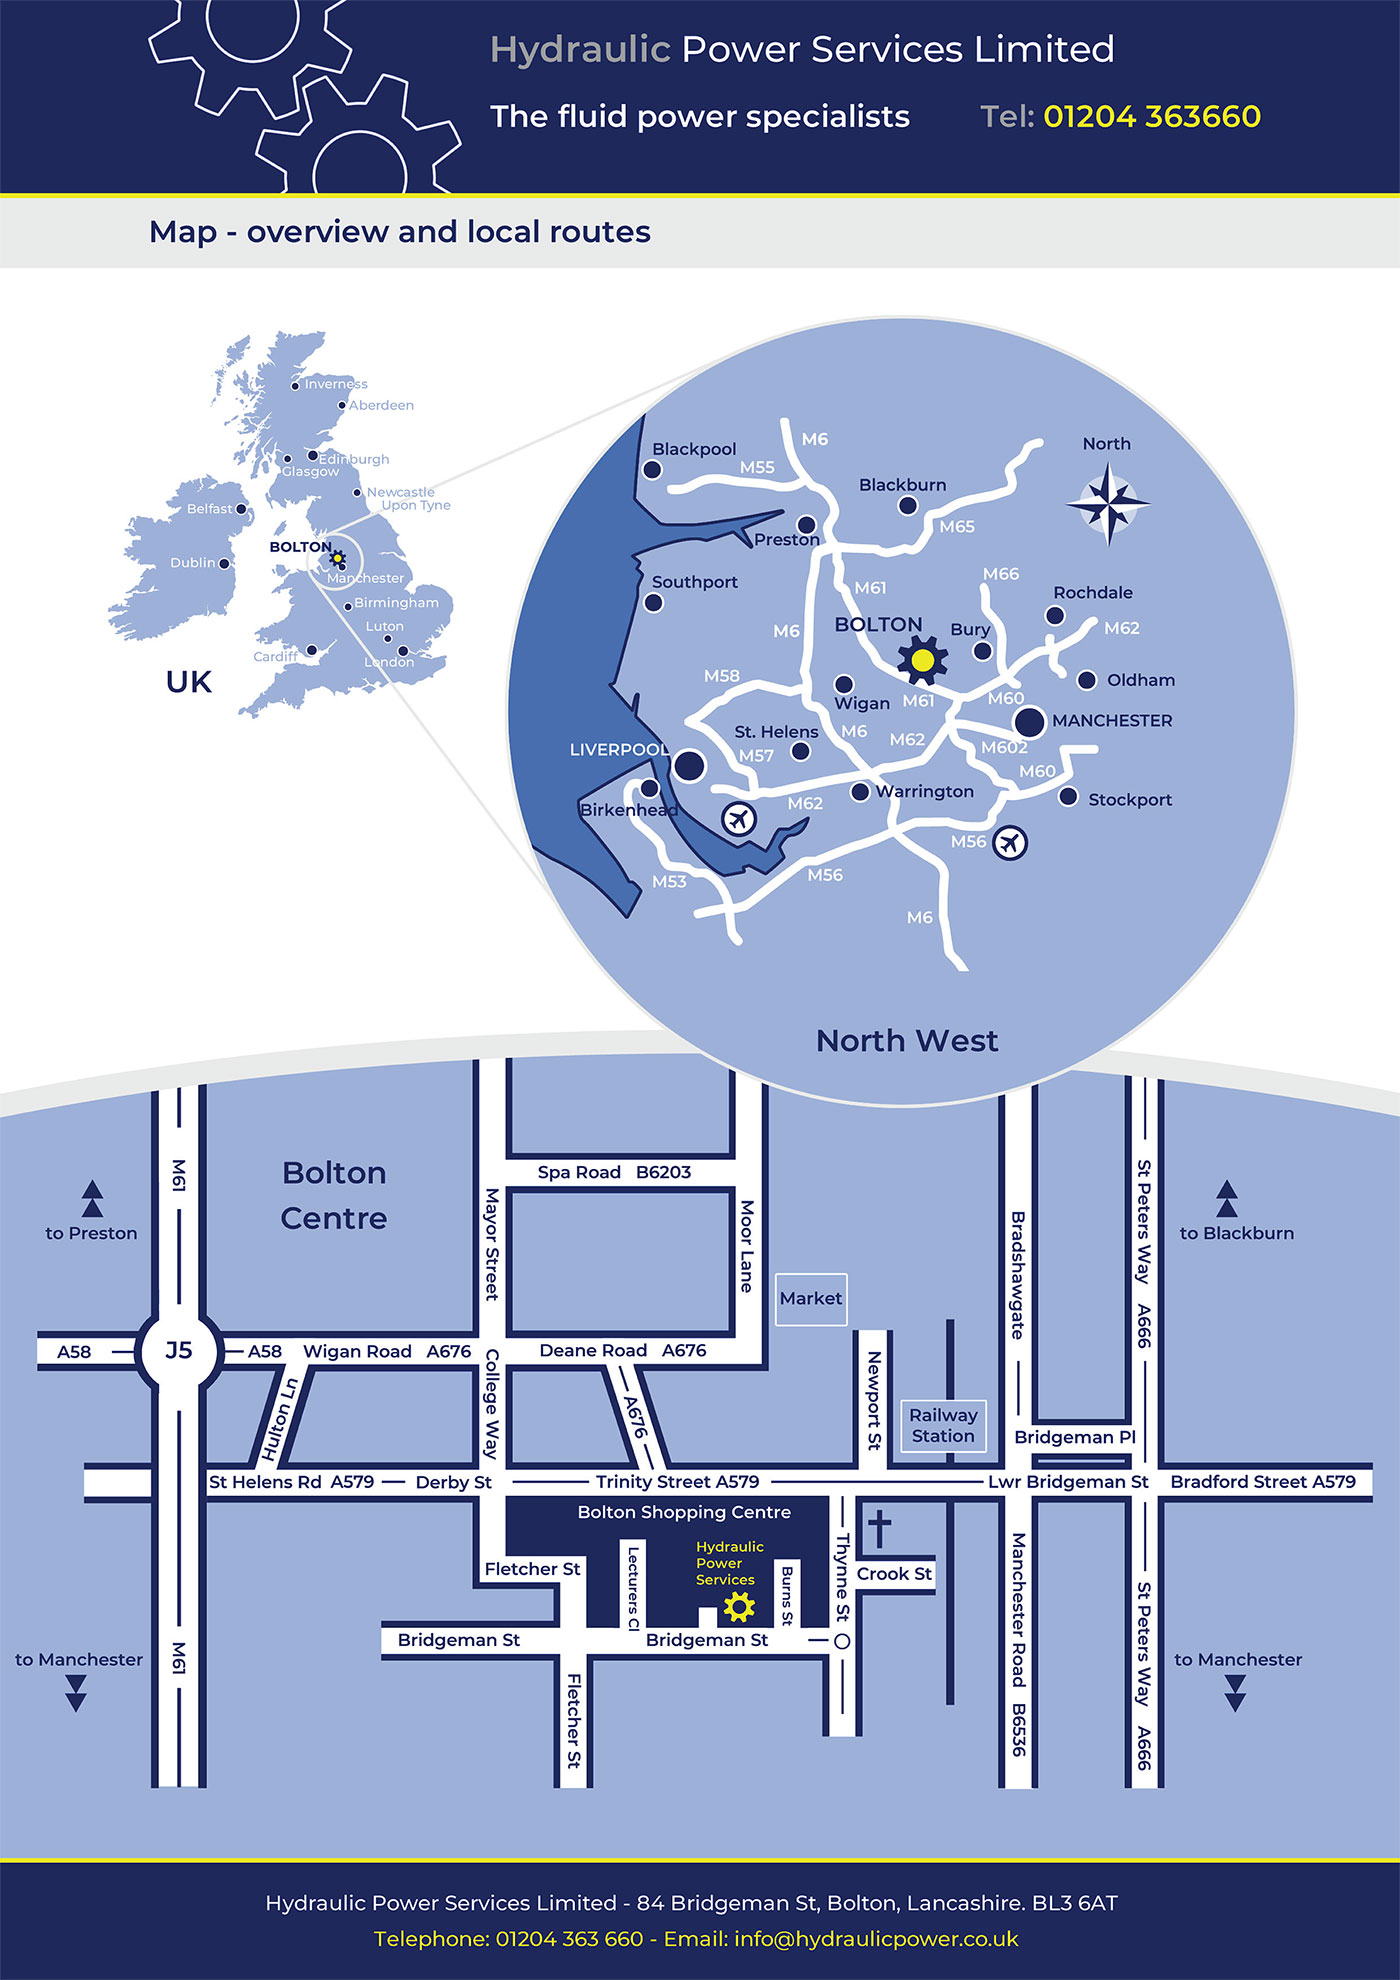 Hydraulic Power Services - Location Map